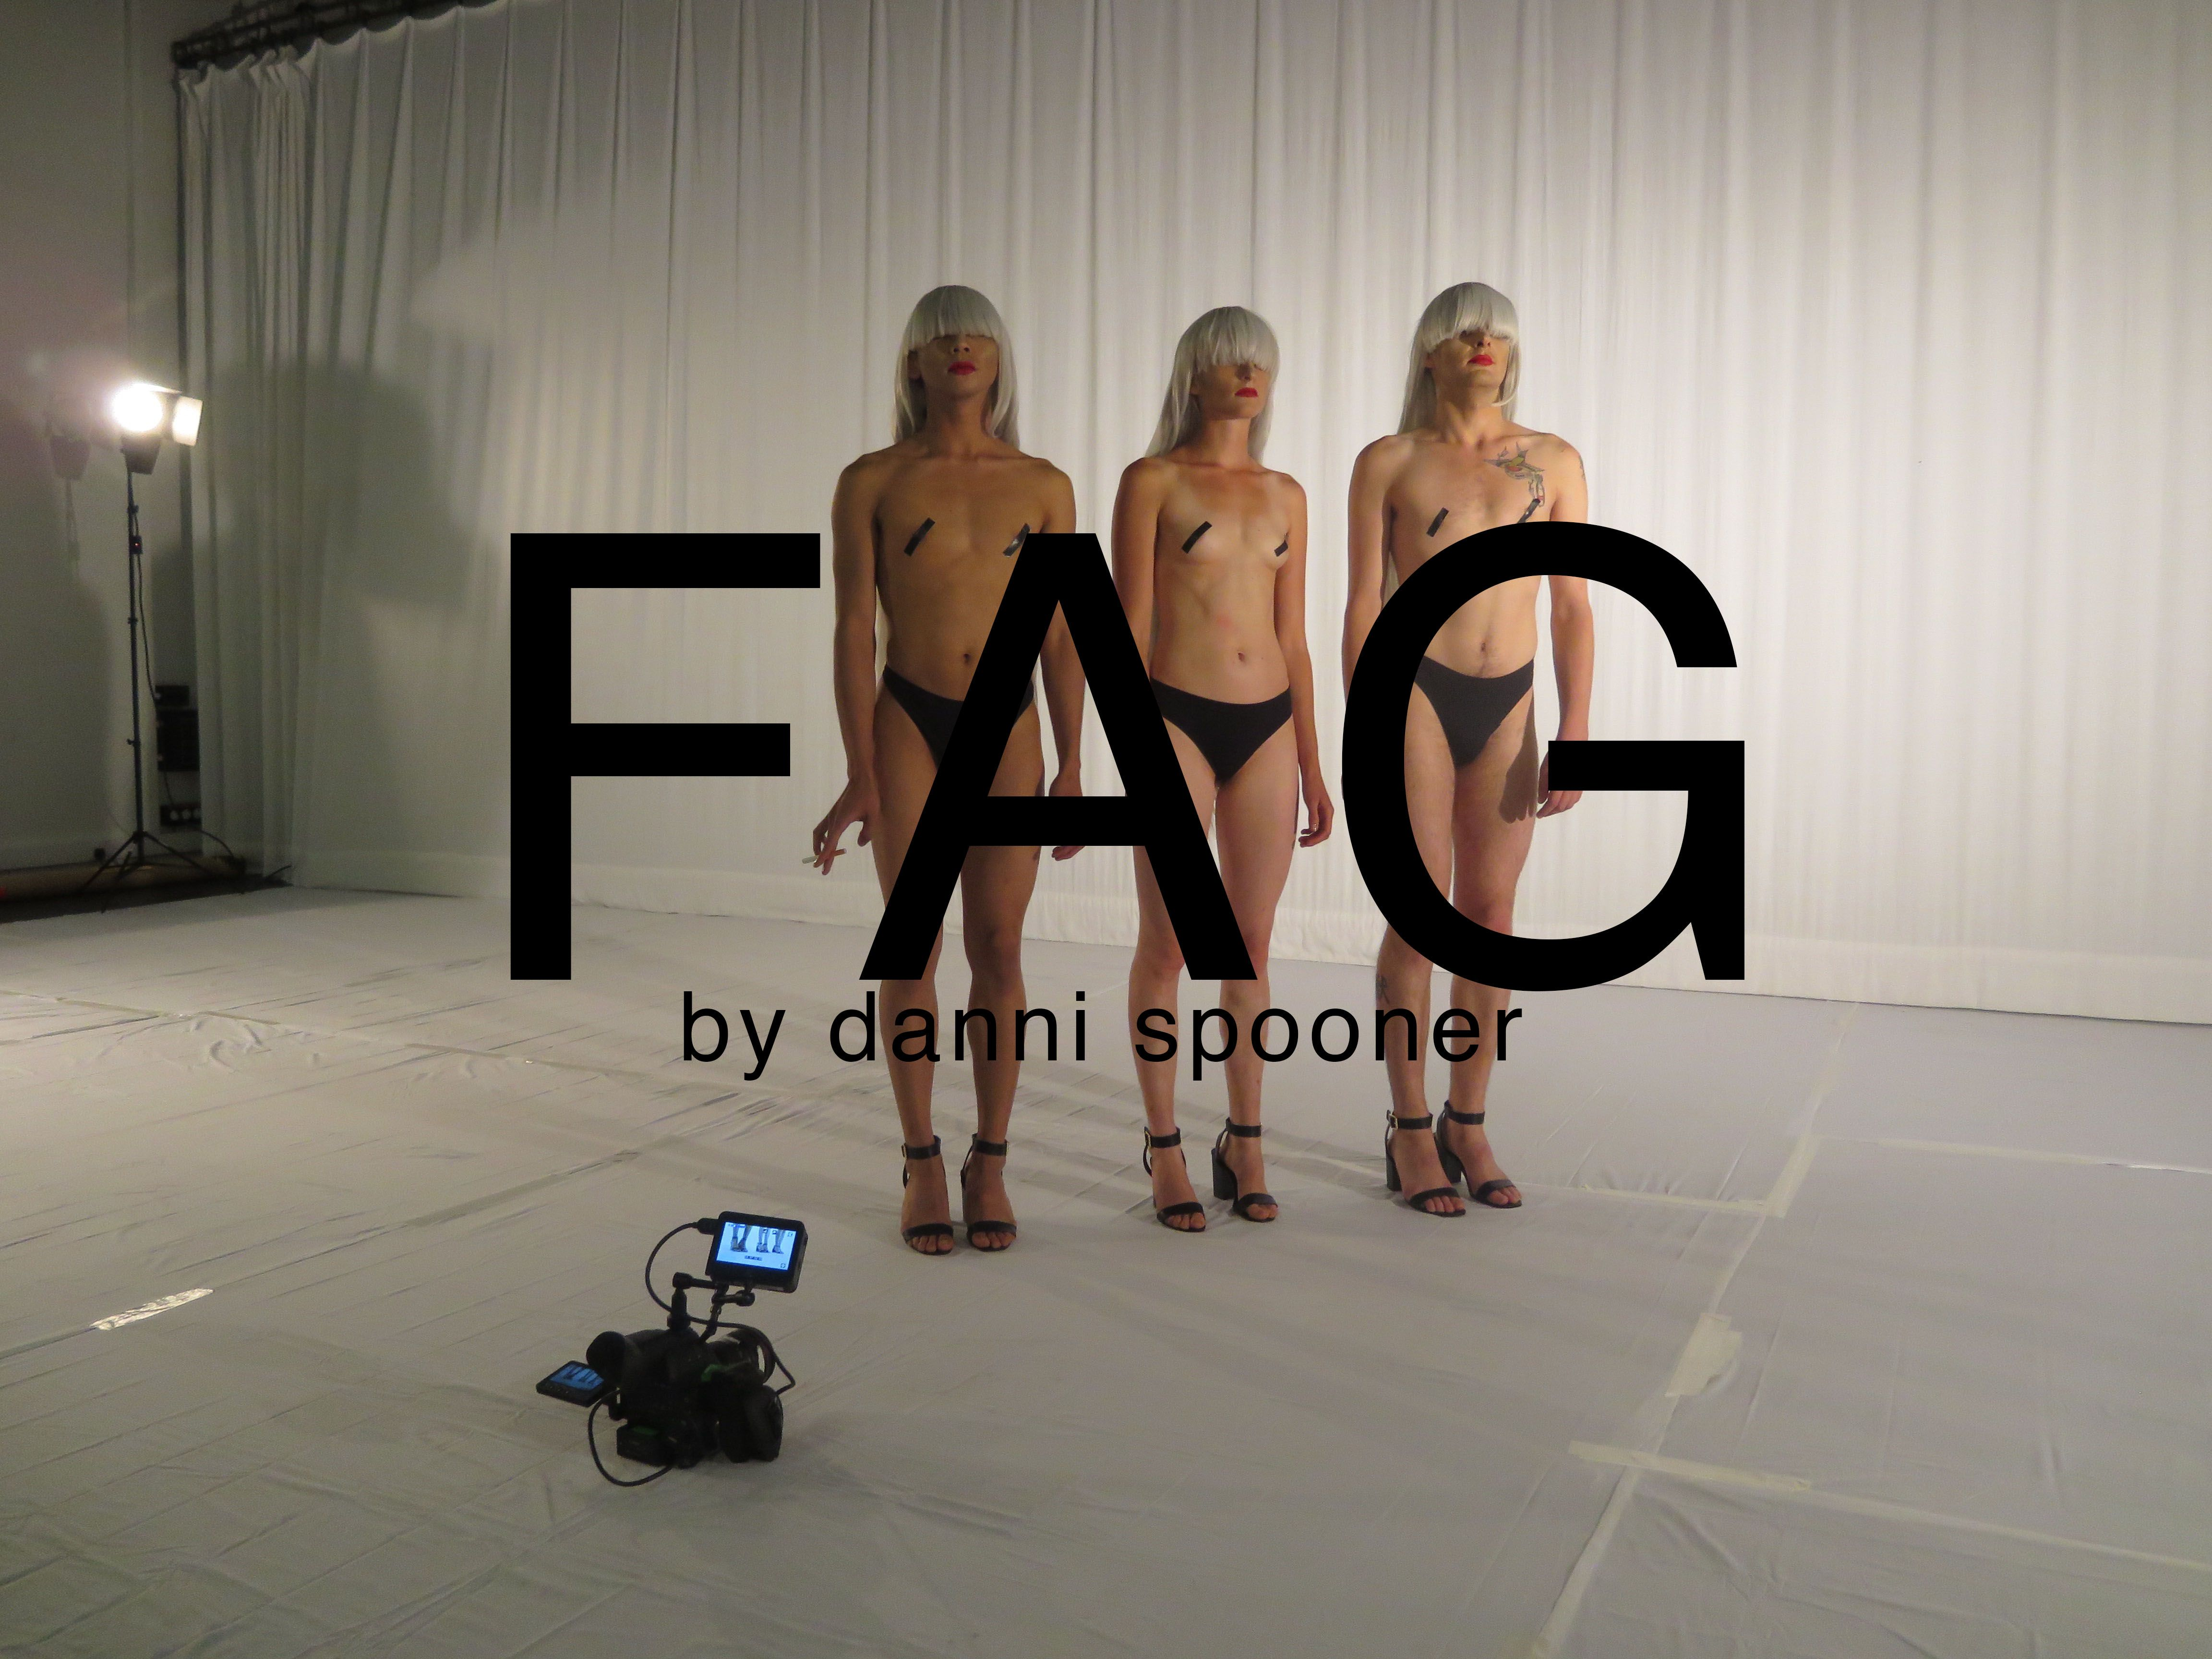 Danni Spooner FAG video image of three dancers